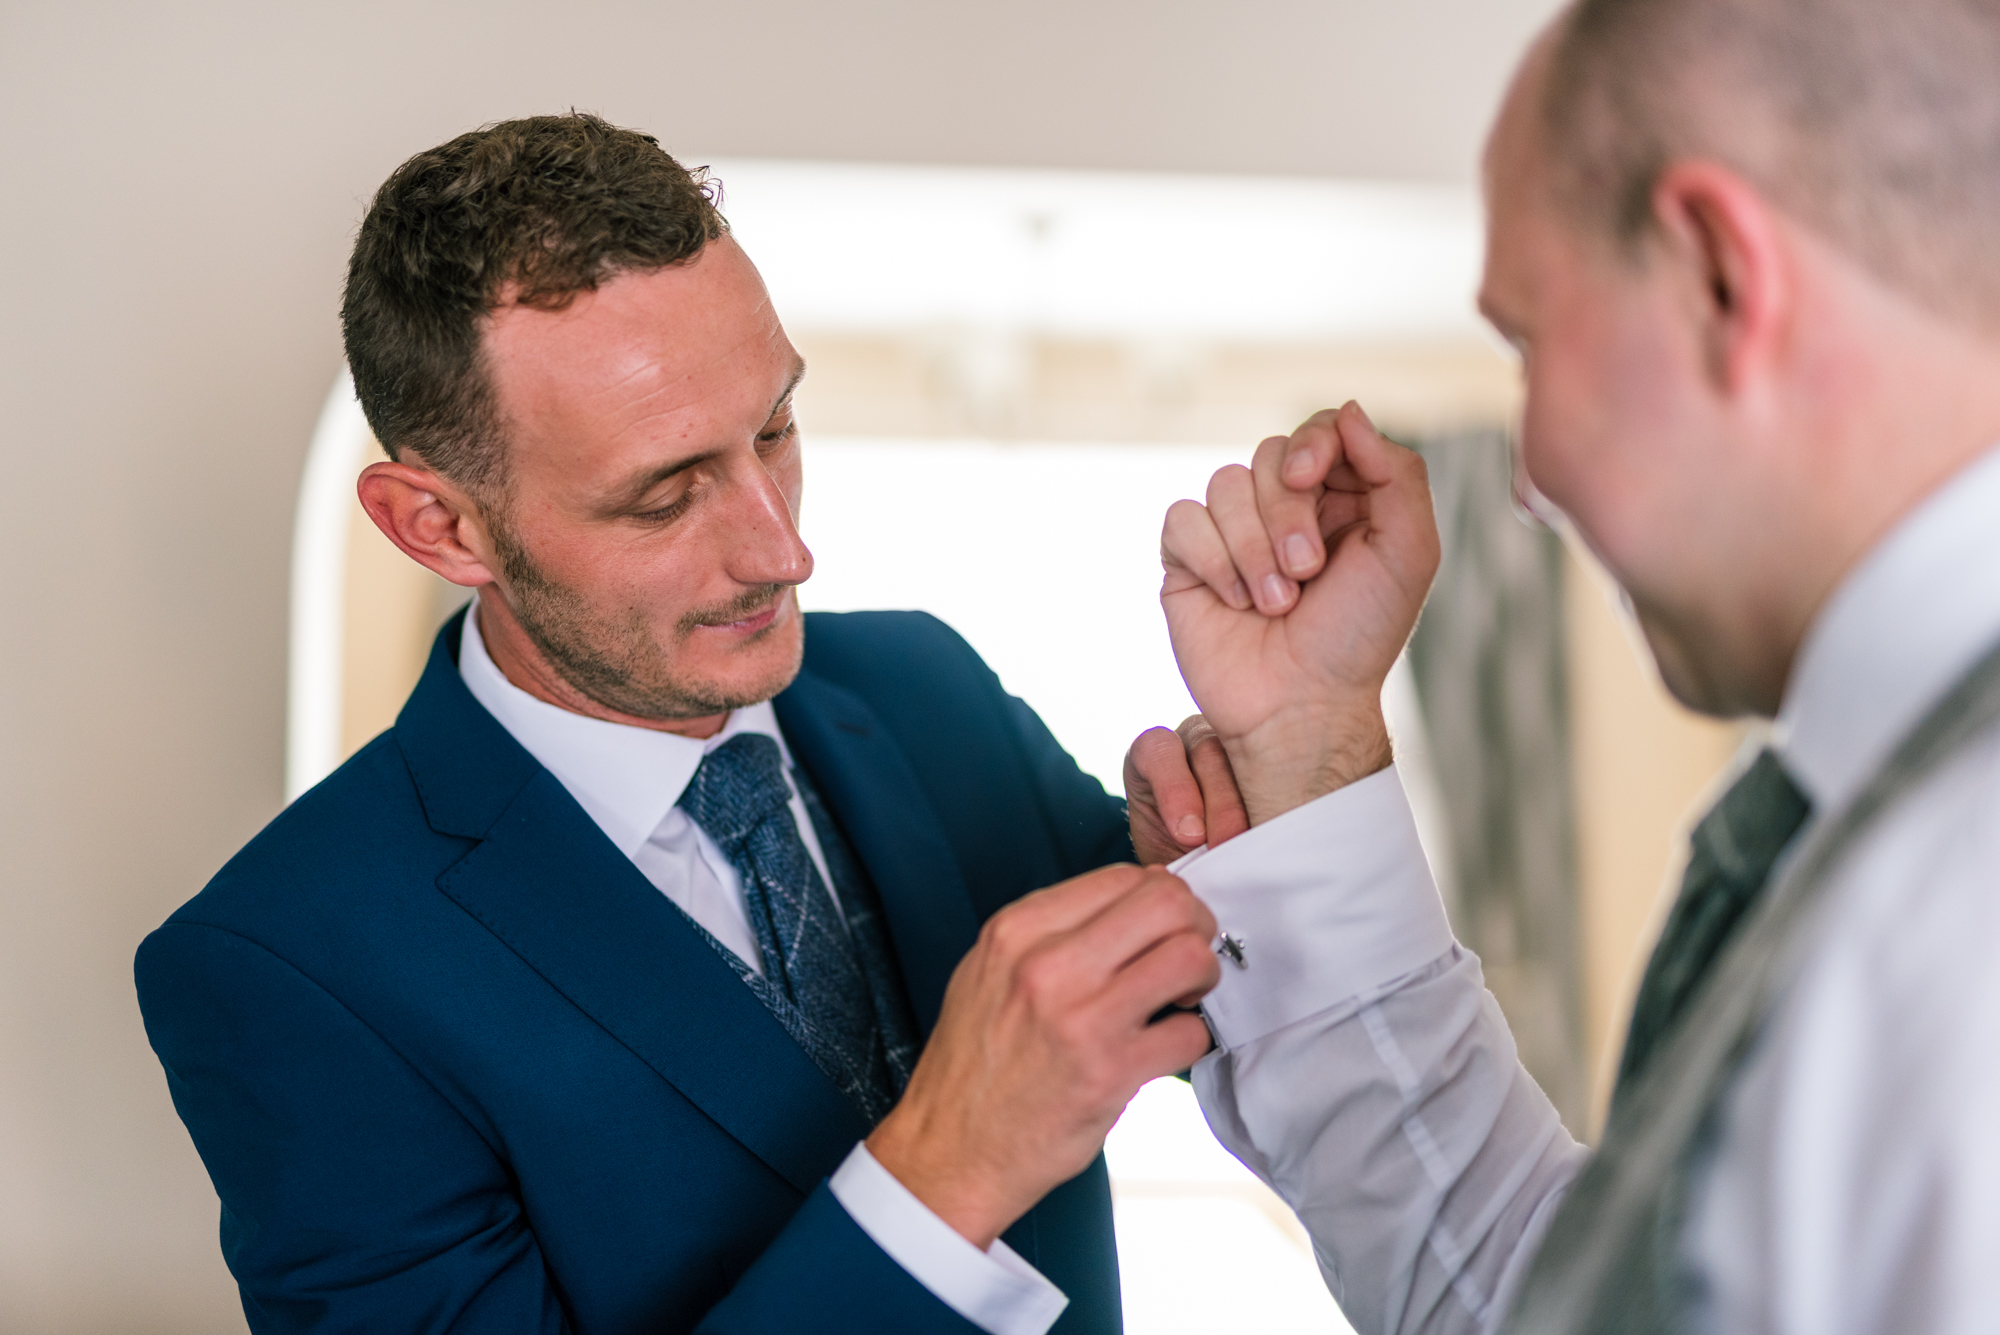 groom sorts his cufflinks